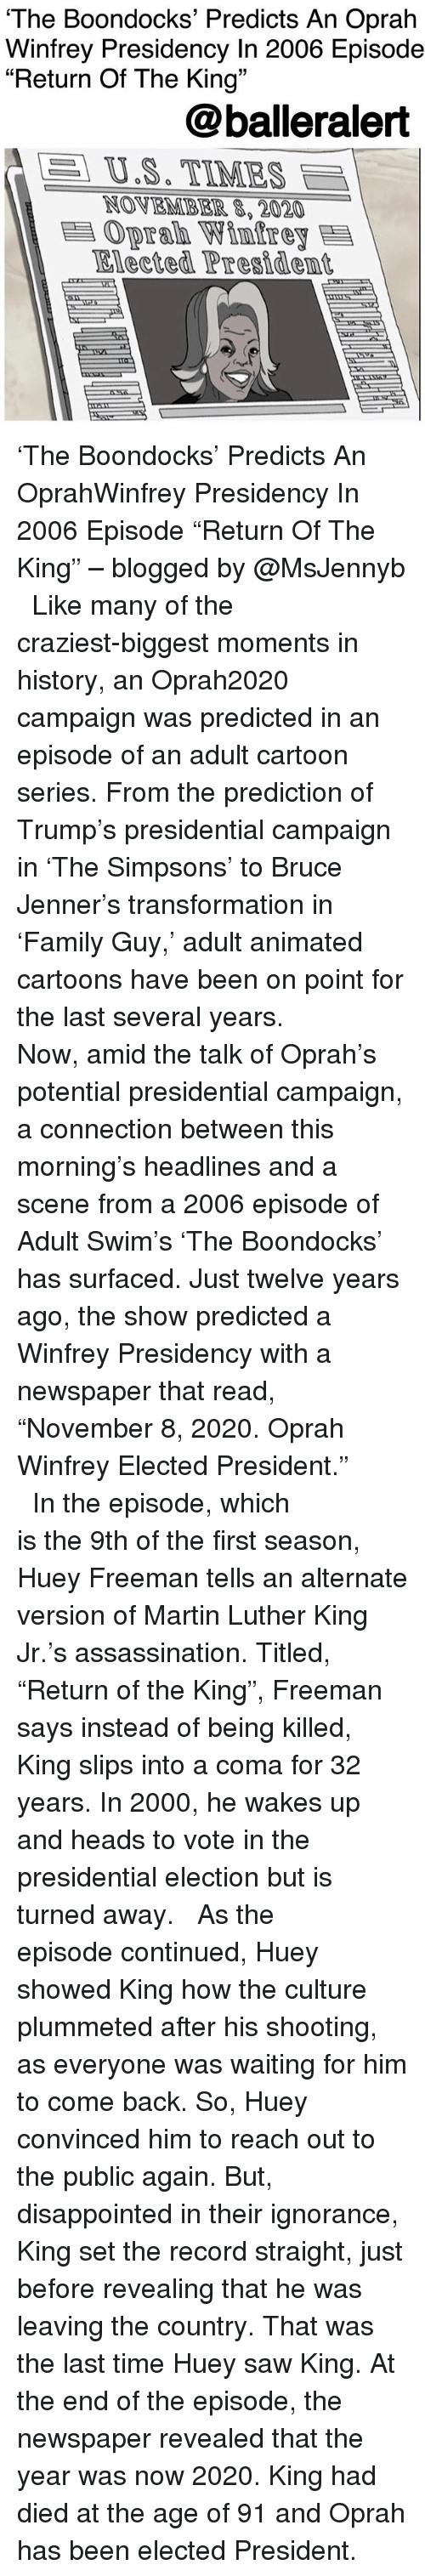 "Assassination, Bruce Jenner, and Disappointed: The Boondocks' Predicts An Oprah  Winfrey Presidency In 2006 Episode  ""Return Of The King""  13  @balleralert  A  US. TIMES  NOVEMBER 8,2020  Oprah Winfrey  Elected Presidem 'The Boondocks' Predicts An OprahWinfrey Presidency In 2006 Episode ""Return Of The King"" – blogged by @MsJennyb ⠀⠀⠀⠀⠀⠀⠀ ⠀⠀⠀⠀⠀⠀⠀ Like many of the craziest-biggest moments in history, an Oprah2020 campaign was predicted in an episode of an adult cartoon series. From the prediction of Trump's presidential campaign in 'The Simpsons' to Bruce Jenner's transformation in 'Family Guy,' adult animated cartoons have been on point for the last several years. ⠀⠀⠀⠀⠀⠀⠀ ⠀⠀⠀⠀⠀⠀⠀ Now, amid the talk of Oprah's potential presidential campaign, a connection between this morning's headlines and a scene from a 2006 episode of Adult Swim's 'The Boondocks' has surfaced. Just twelve years ago, the show predicted a Winfrey Presidency with a newspaper that read, ""November 8, 2020. Oprah Winfrey Elected President."" ⠀⠀⠀⠀⠀⠀⠀ ⠀⠀⠀⠀⠀⠀⠀ In the episode, which is the 9th of the first season, Huey Freeman tells an alternate version of Martin Luther King Jr.'s assassination. Titled, ""Return of the King"", Freeman says instead of being killed, King slips into a coma for 32 years. In 2000, he wakes up and heads to vote in the presidential election but is turned away. ⠀⠀⠀⠀⠀⠀⠀ ⠀⠀⠀⠀⠀⠀⠀ As the episode continued, Huey showed King how the culture plummeted after his shooting, as everyone was waiting for him to come back. So, Huey convinced him to reach out to the public again. But, disappointed in their ignorance, King set the record straight, just before revealing that he was leaving the country. That was the last time Huey saw King. At the end of the episode, the newspaper revealed that the year was now 2020. King had died at the age of 91 and Oprah has been elected President."